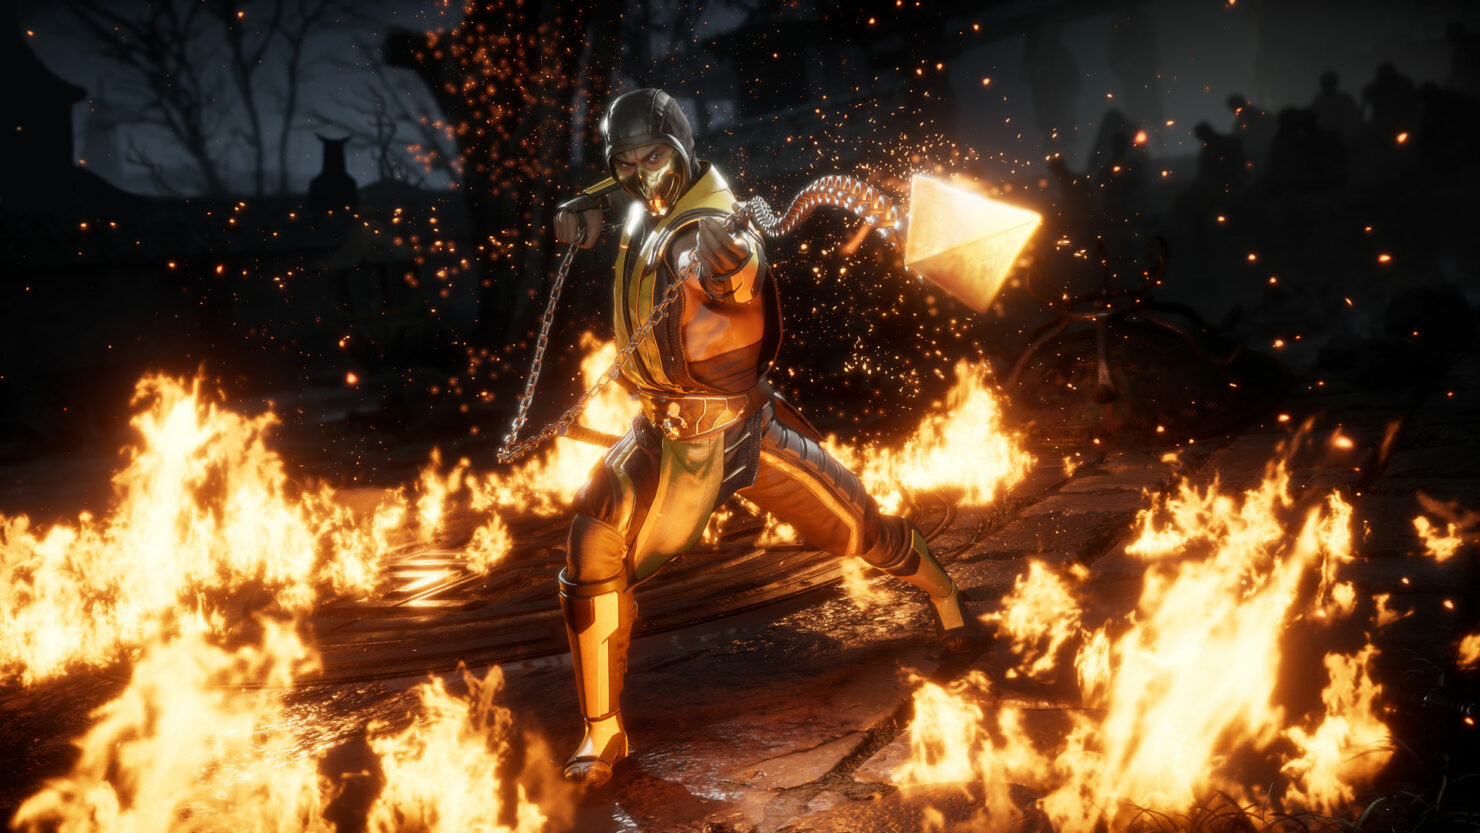 mortal-kombat-11-screenshots-3-1480x833.